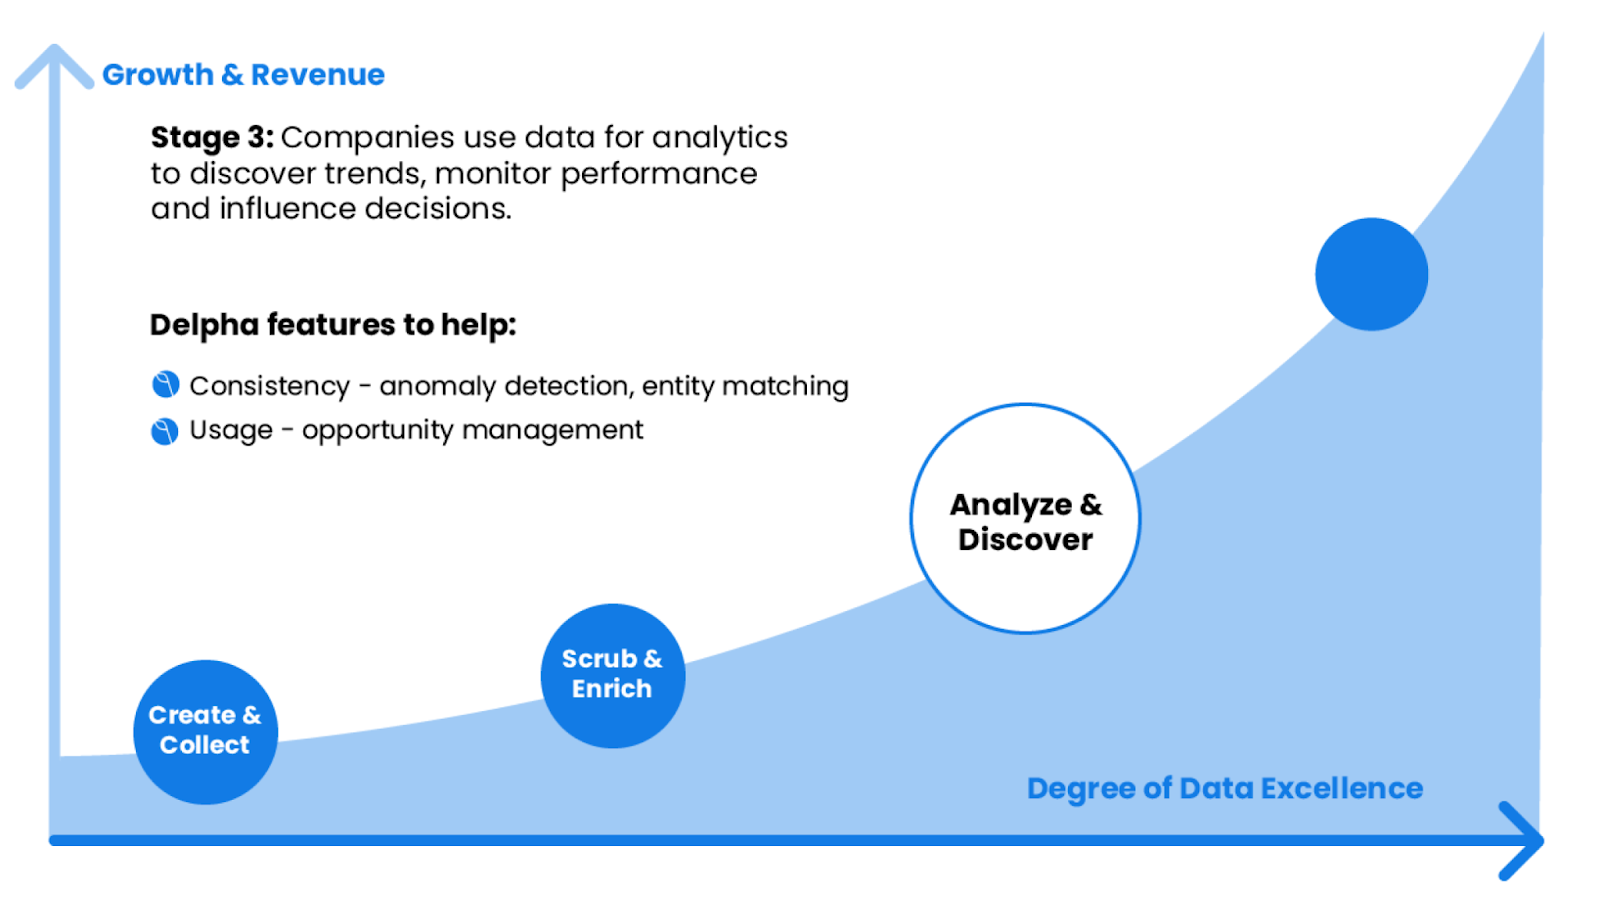 Delpha: Stage 3 involves using analytics to discover trends and use them in business decisions.